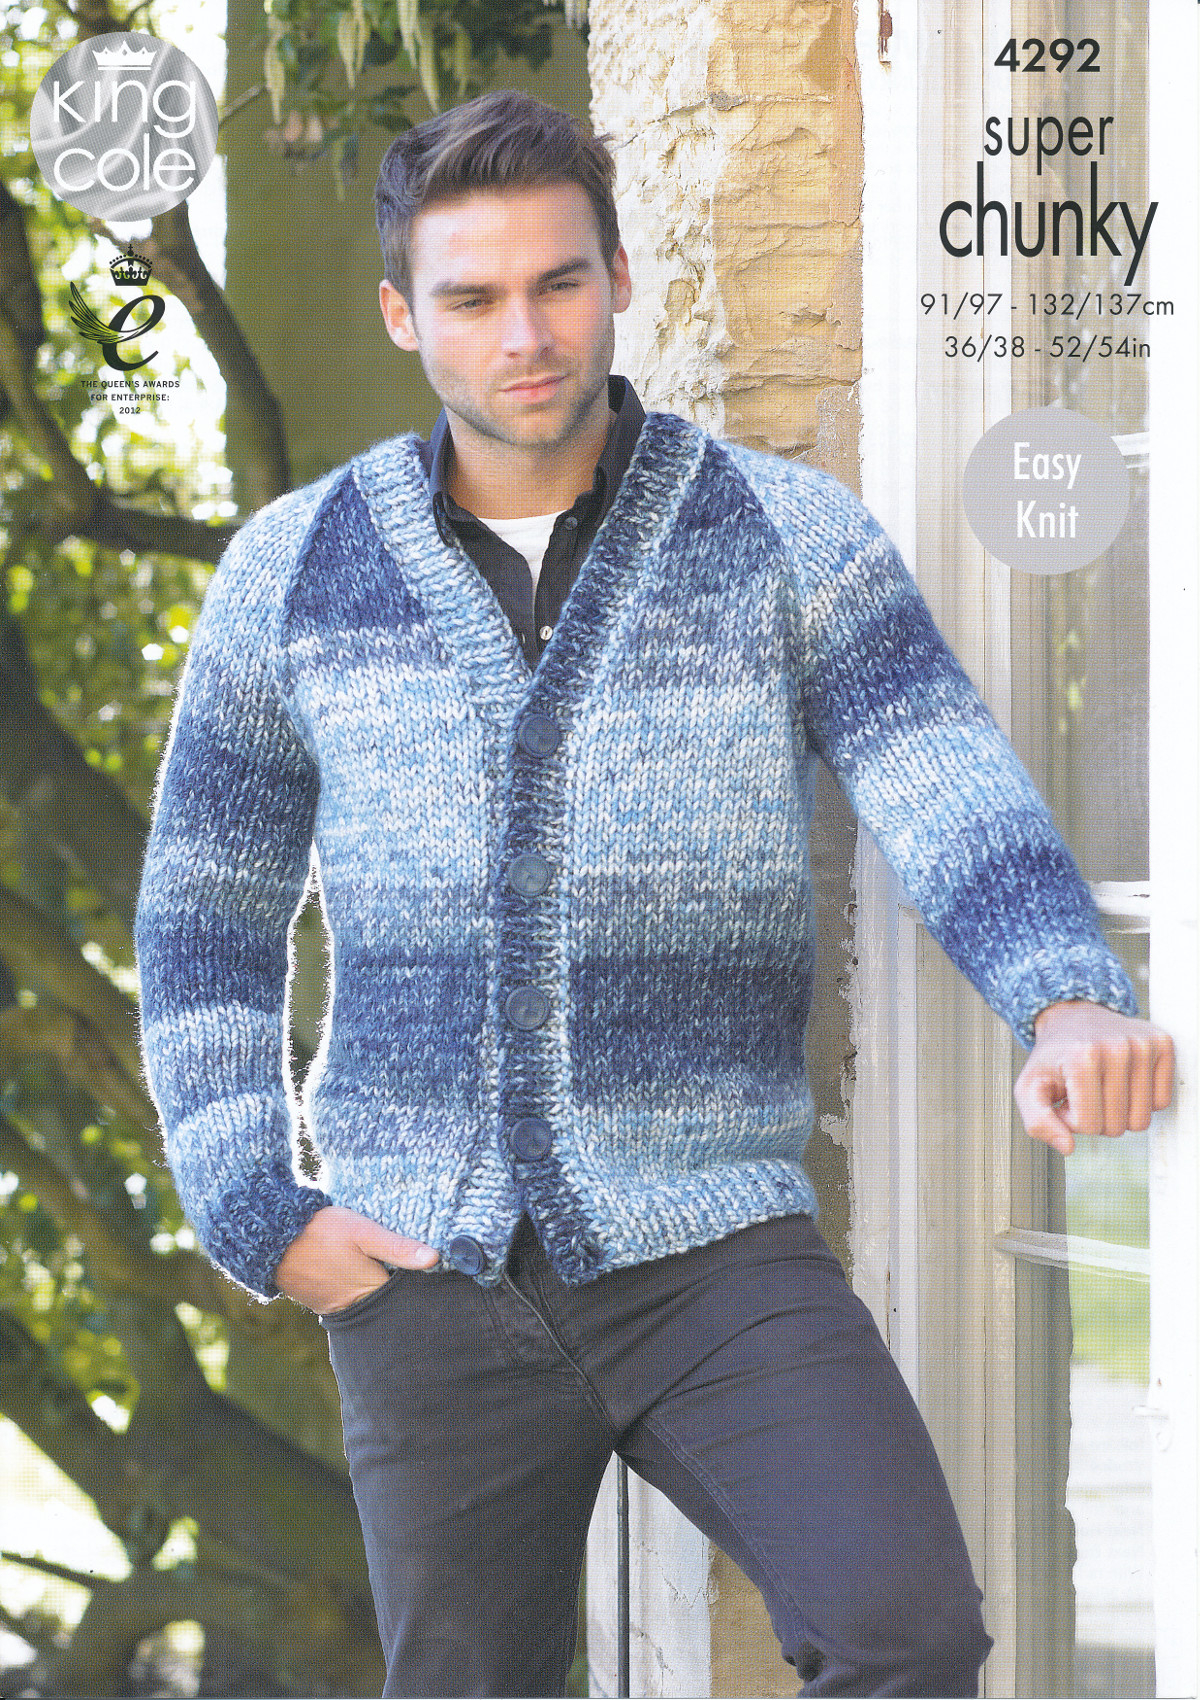 Mens Knitting Patterns Details About Mens Super Chunky Knitting Pattern King Cole Easy Knit Jumper Cardigan 4292